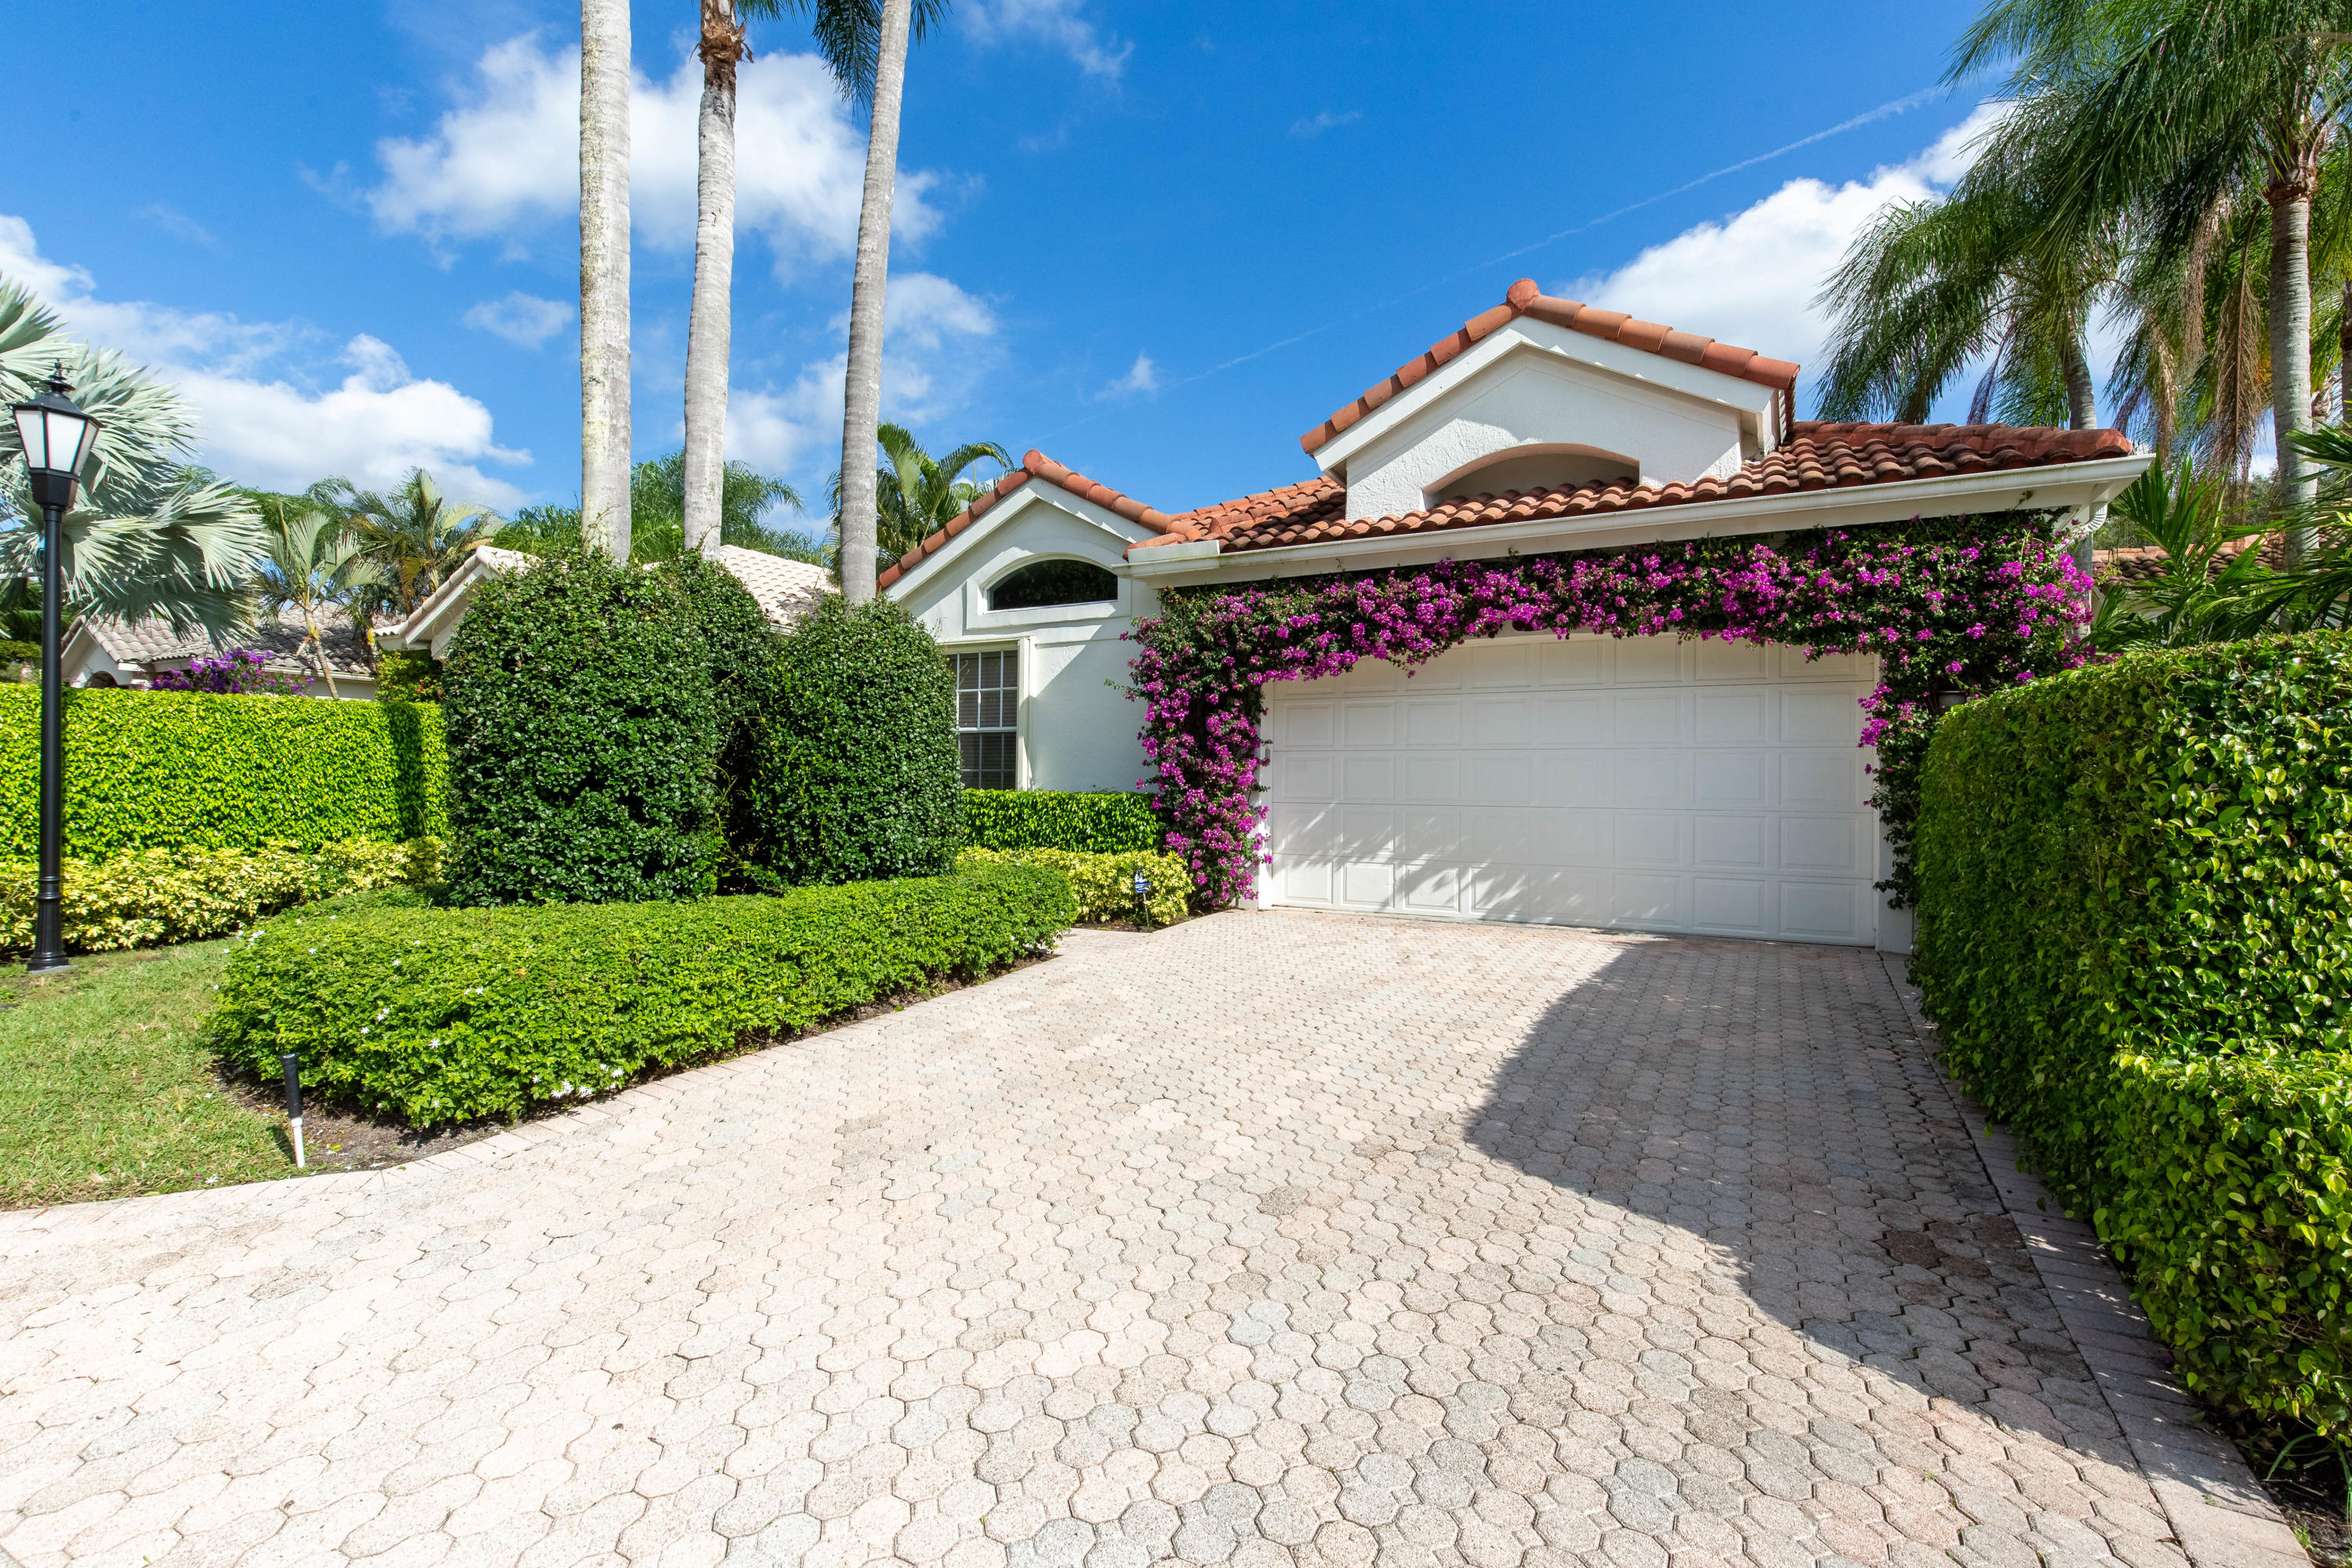 Beautifully  maintained  single  family home in the Palm Beach Polo Golf & Country Club. Close to every thing Equestrian while only a short jaunt to the island (Palm Beach) This home is a great opportunity  to renovate and make it your own or an investment property.